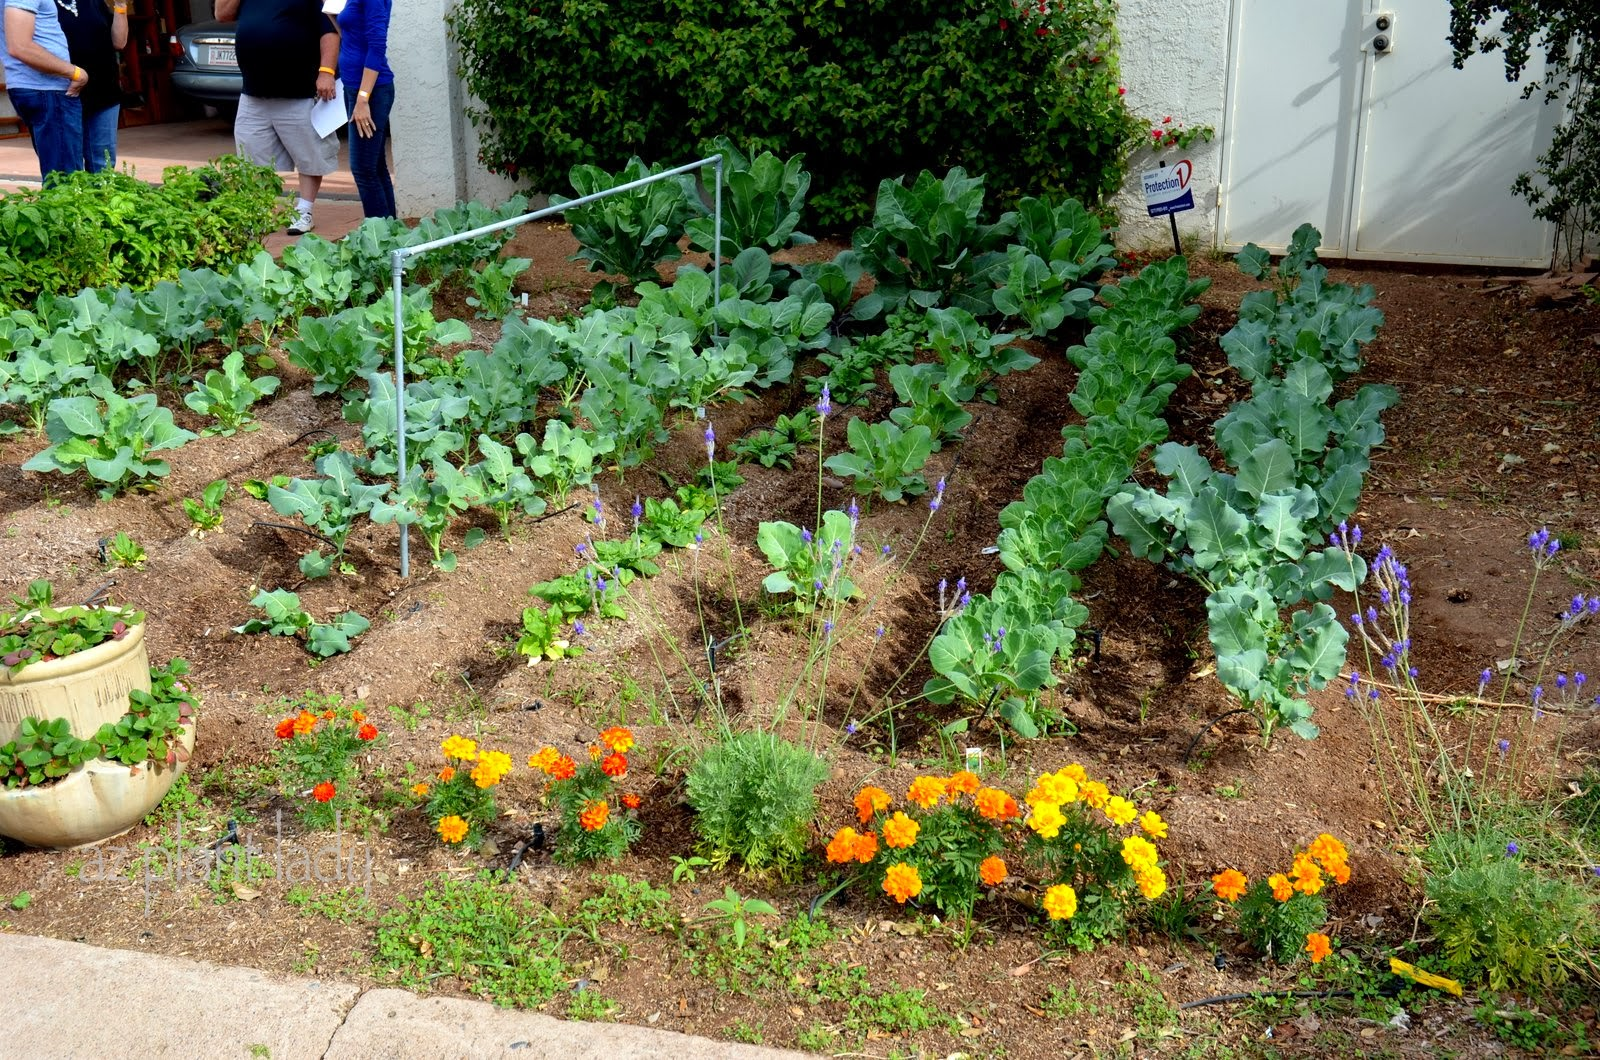 By The Way, Do Know Why The Homeowner Has Planted Flowers At The End Of  Each Vegetable Row?